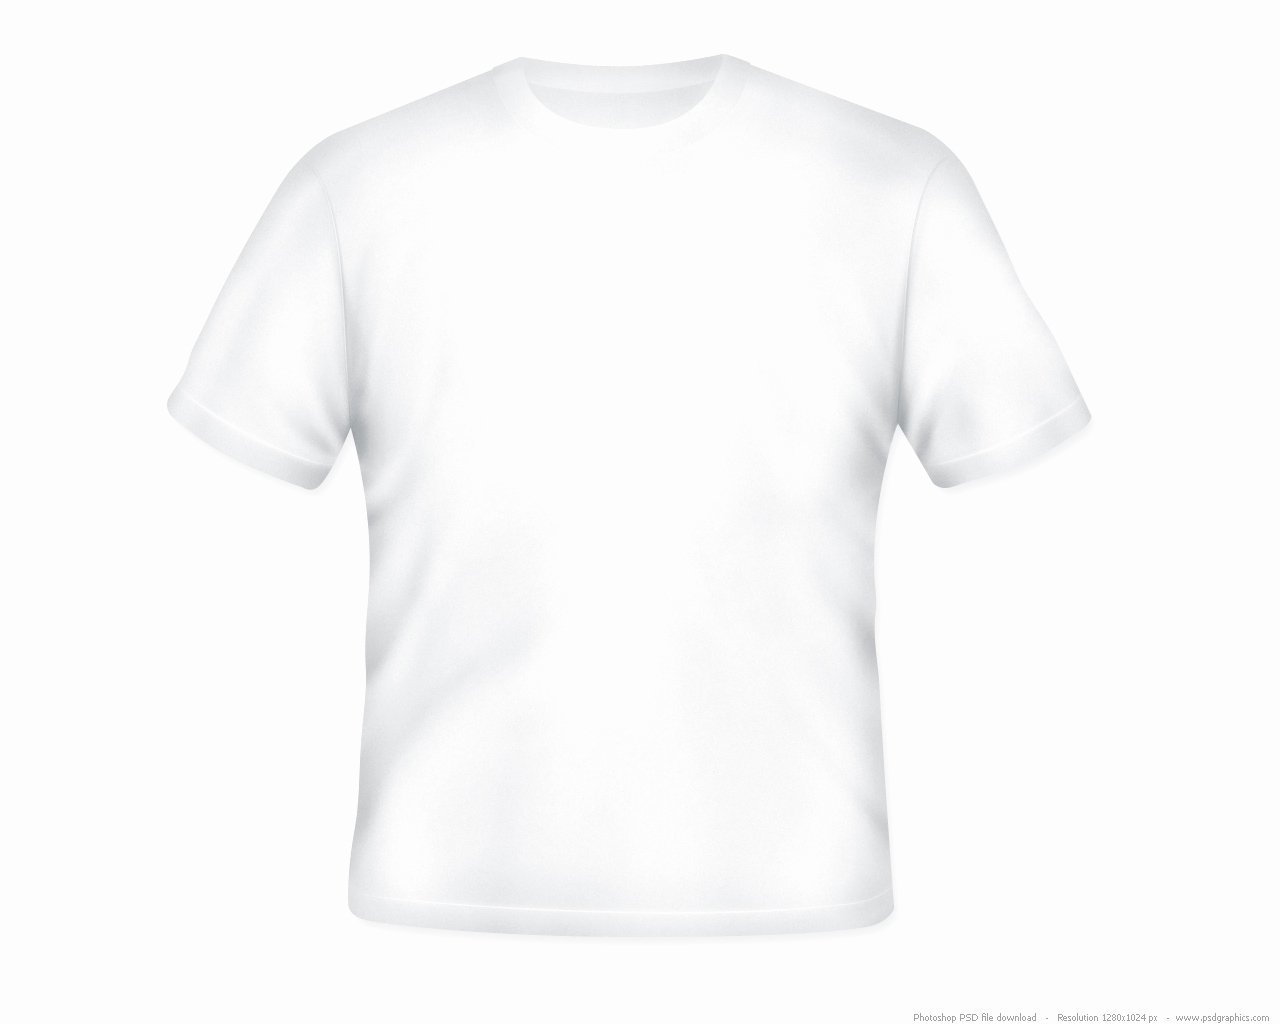 T Shirt Template for Photoshop Inspirational Blank White T Shirt Psd